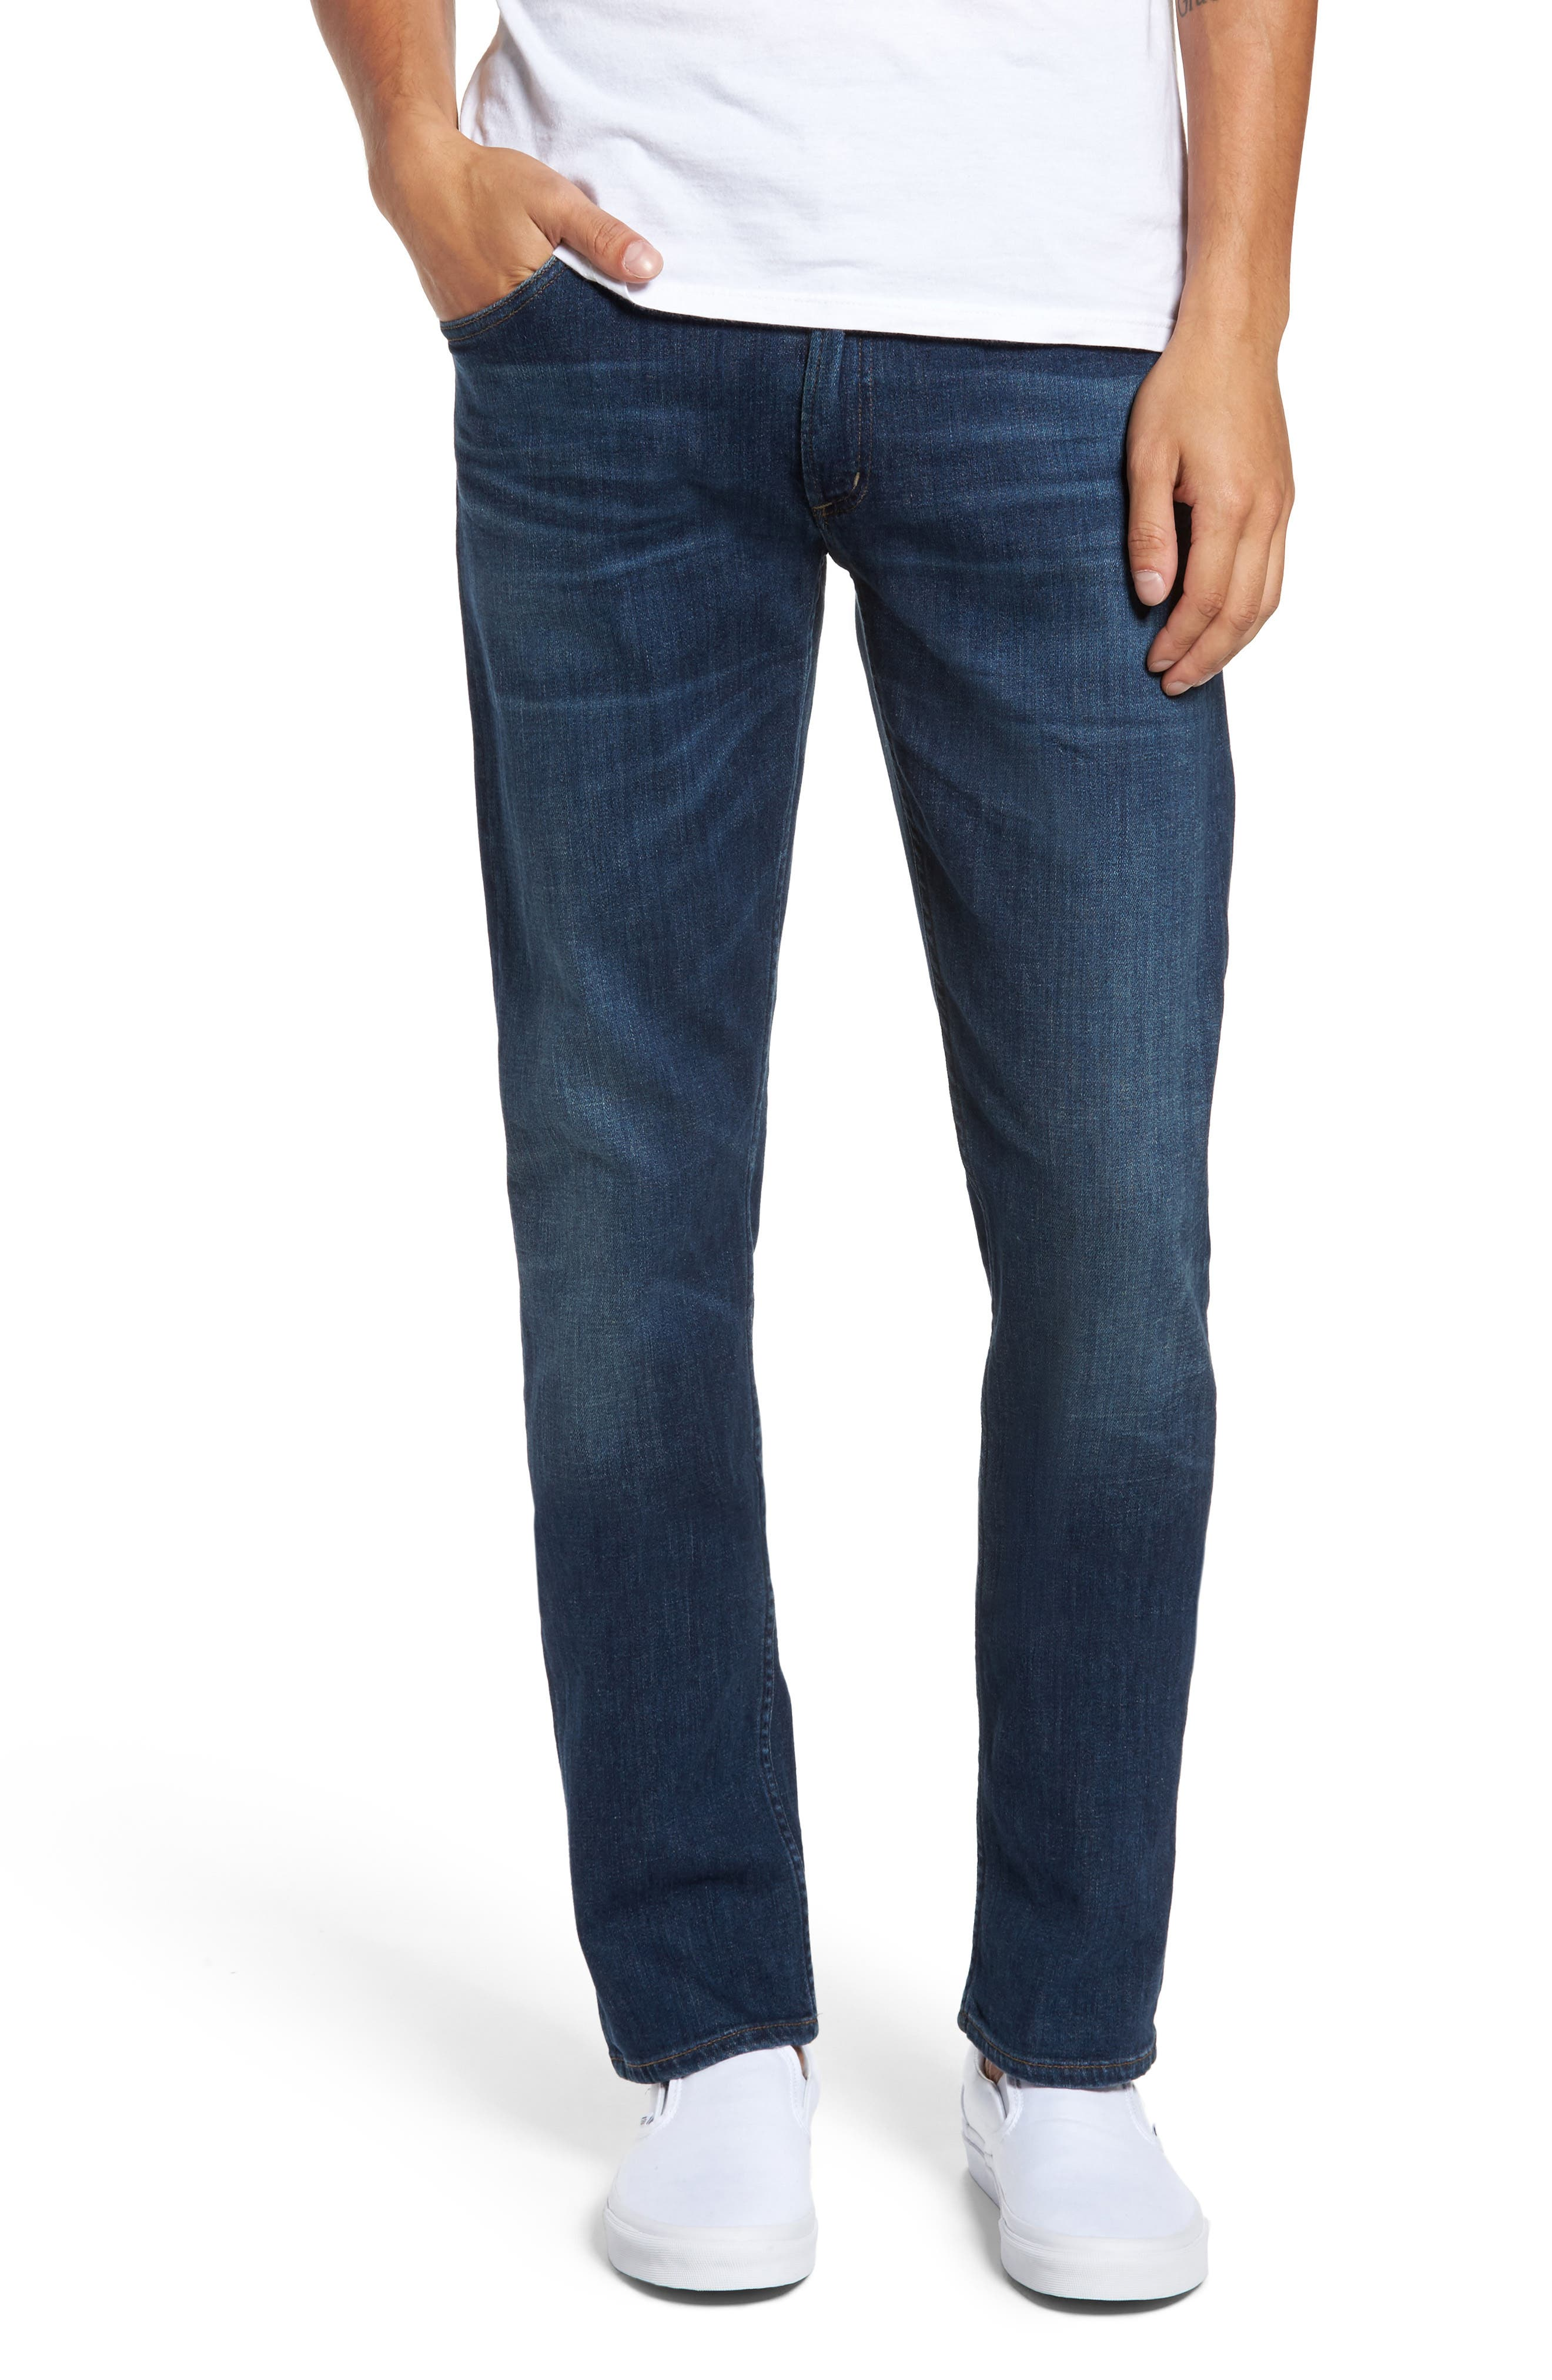 Alternate Image 1 Selected - Citizens of Humanity Bowery Slim Fit Jeans (Eastgate)